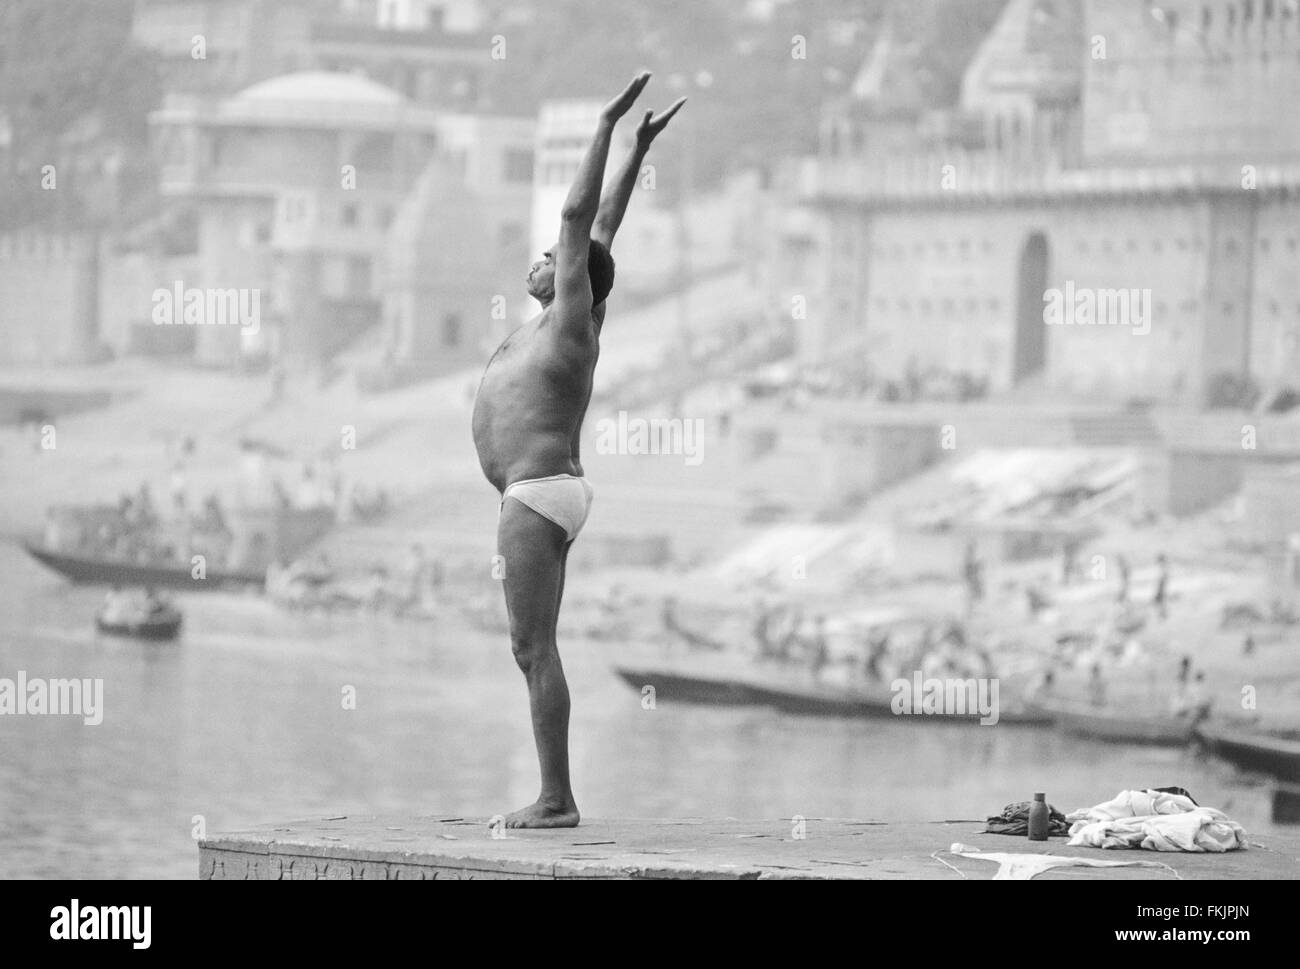 At sunrise guy doing yoga postures,poses,routine facing rising sun.On bathing ghat above sacred River Ganges, Varanasi,India. - Stock Image